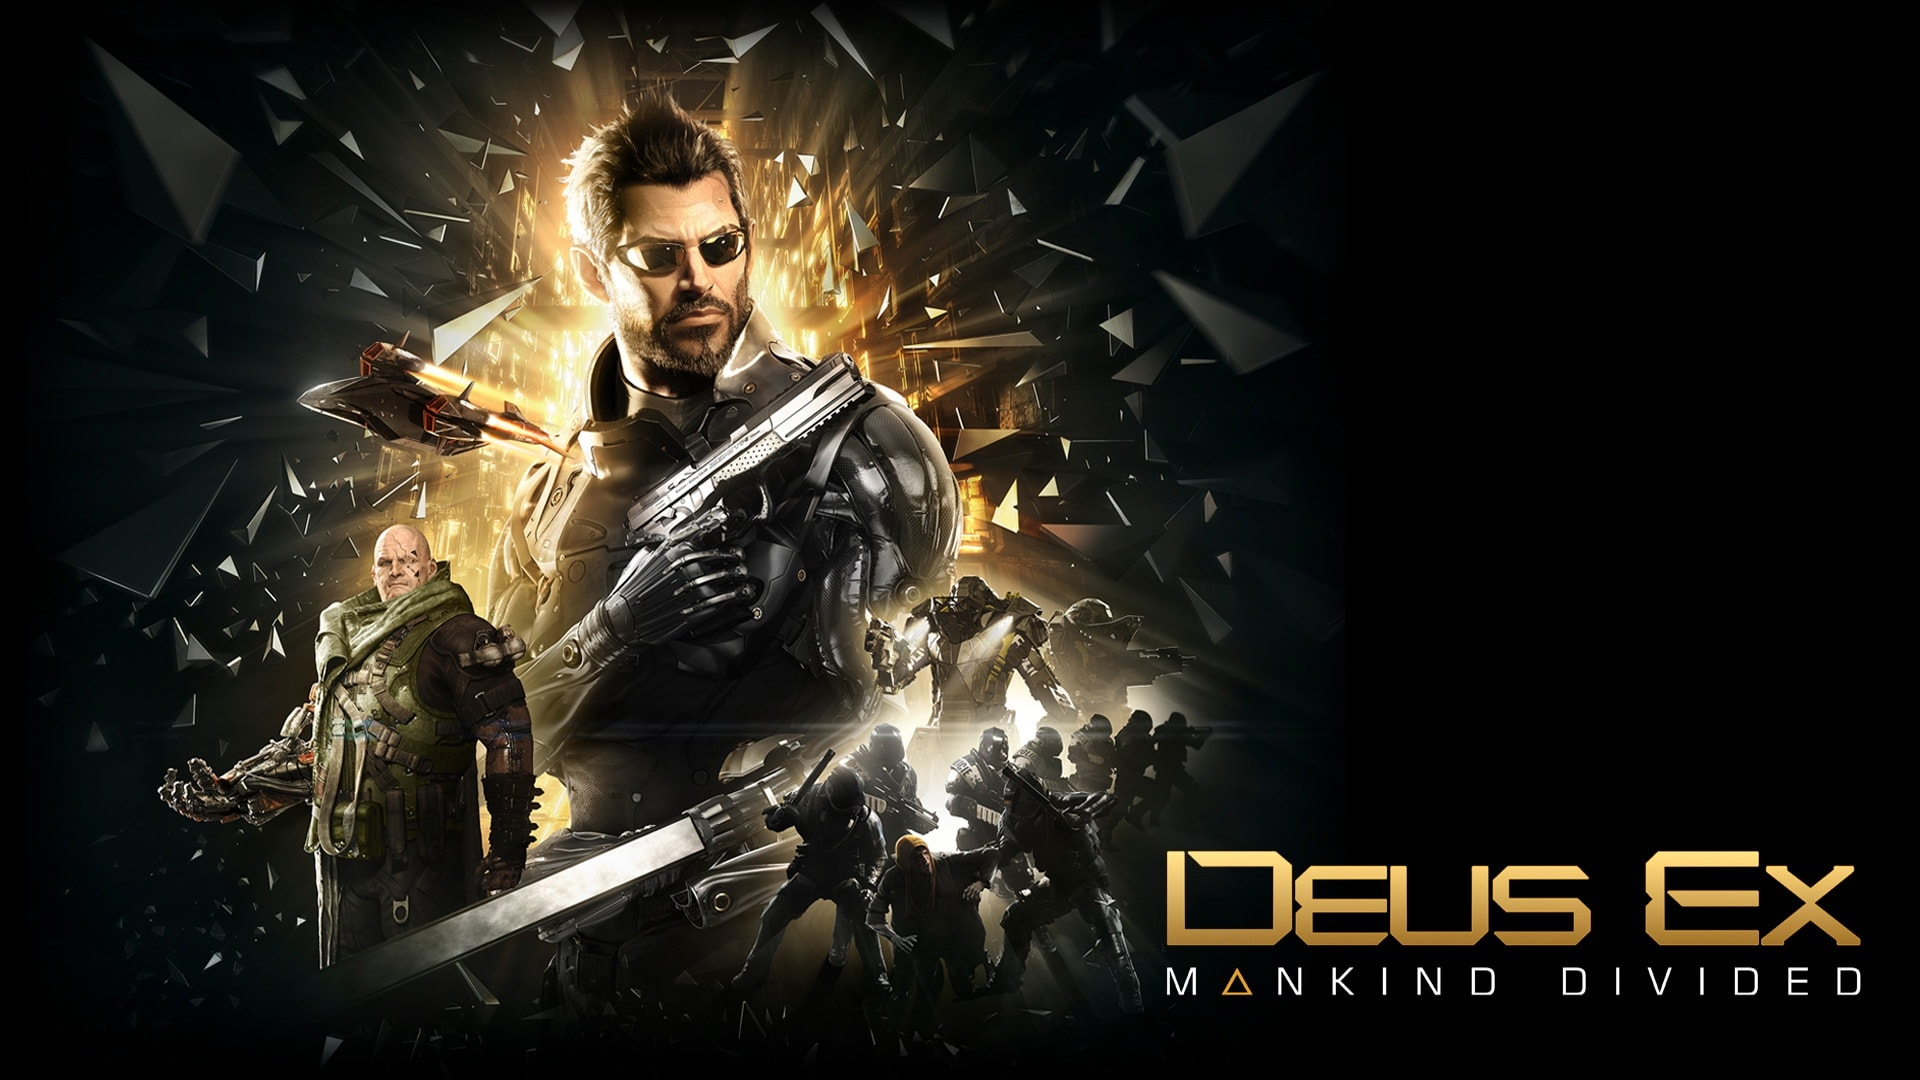 Deus Ex Mankind Divided Wallpapers